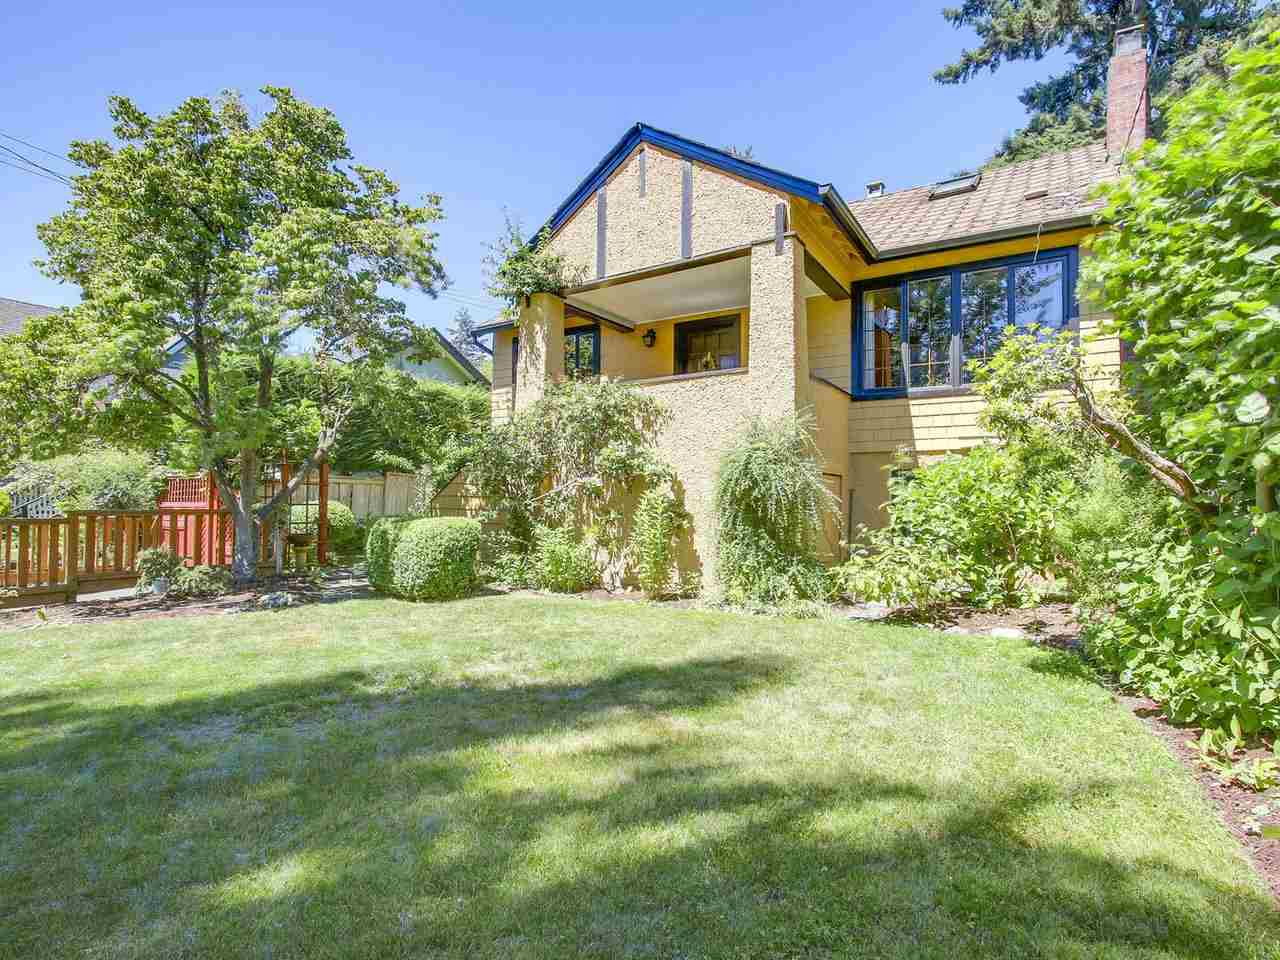 Detached at 3335 W 40TH AVENUE, Vancouver West, British Columbia. Image 1